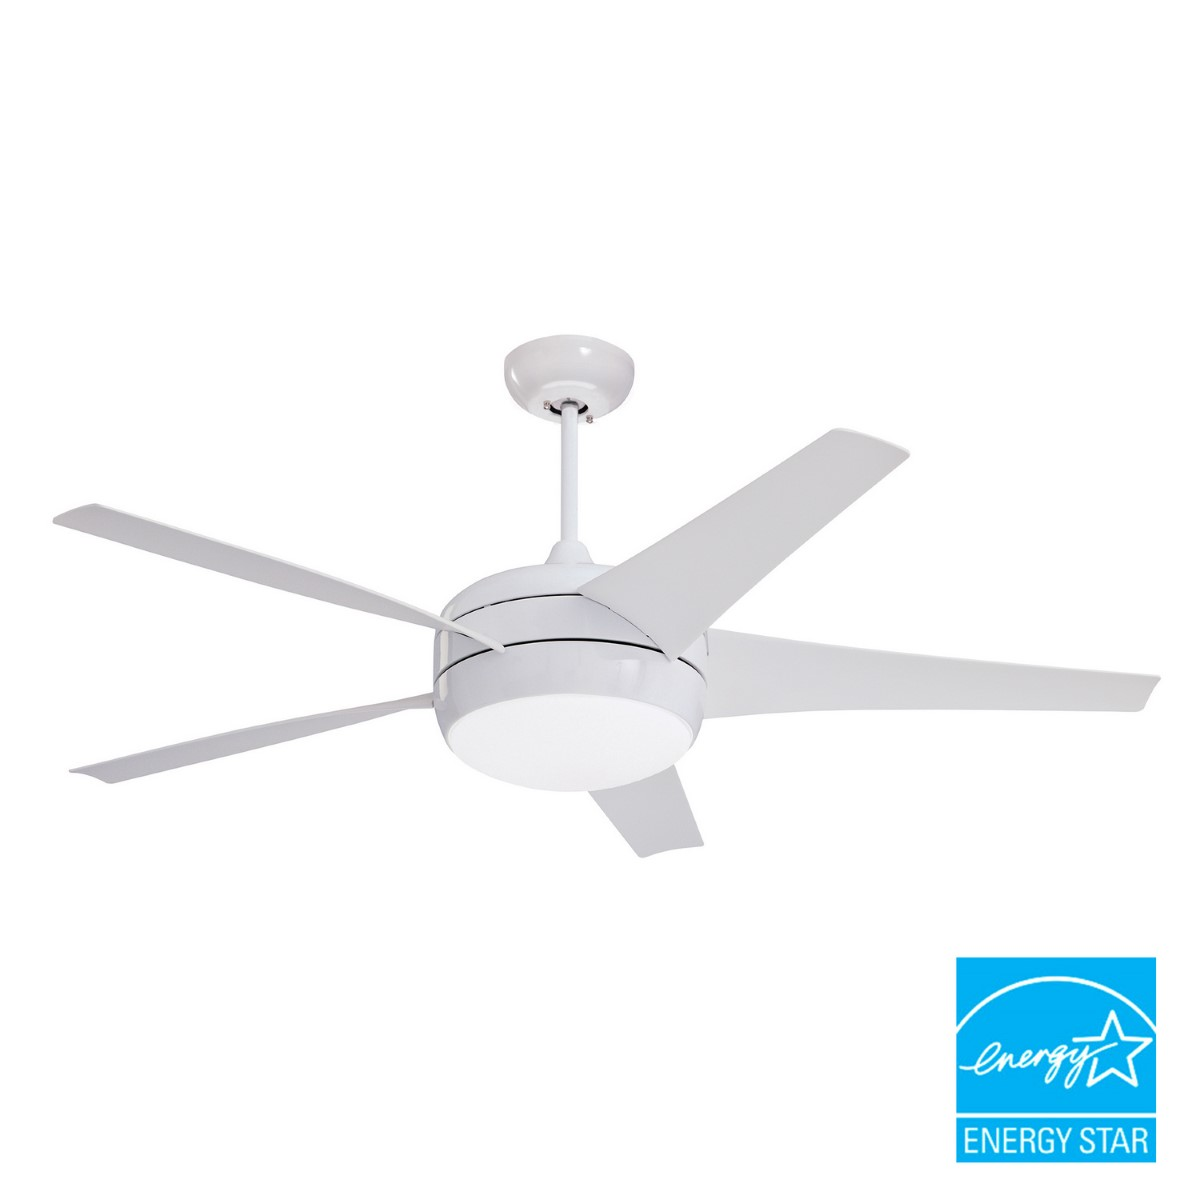 Emerson Midway Eco Appliance White Ceiling Fan